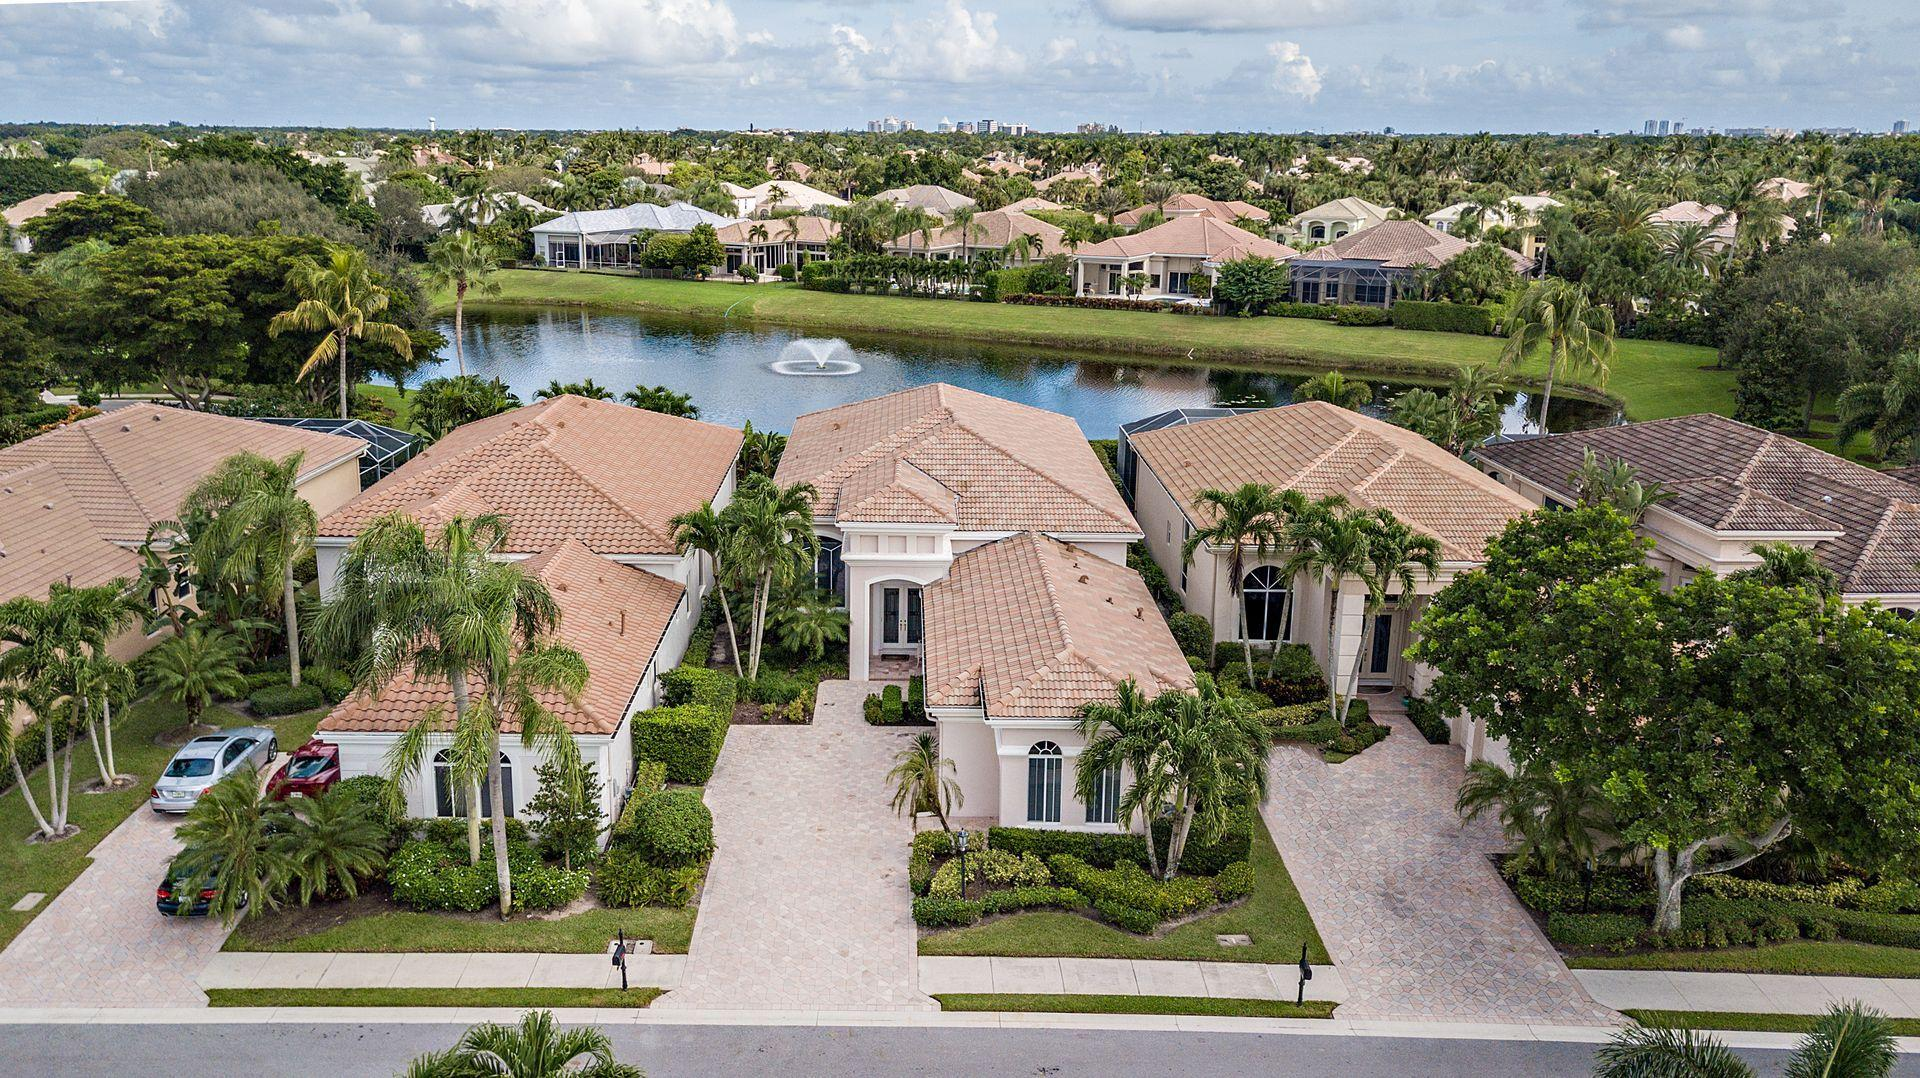 391 Isle Court, Palm Beach Gardens, Florida 33418, 3 Bedrooms Bedrooms, ,3 BathroomsBathrooms,A,Single family,Isle,RX-10575557